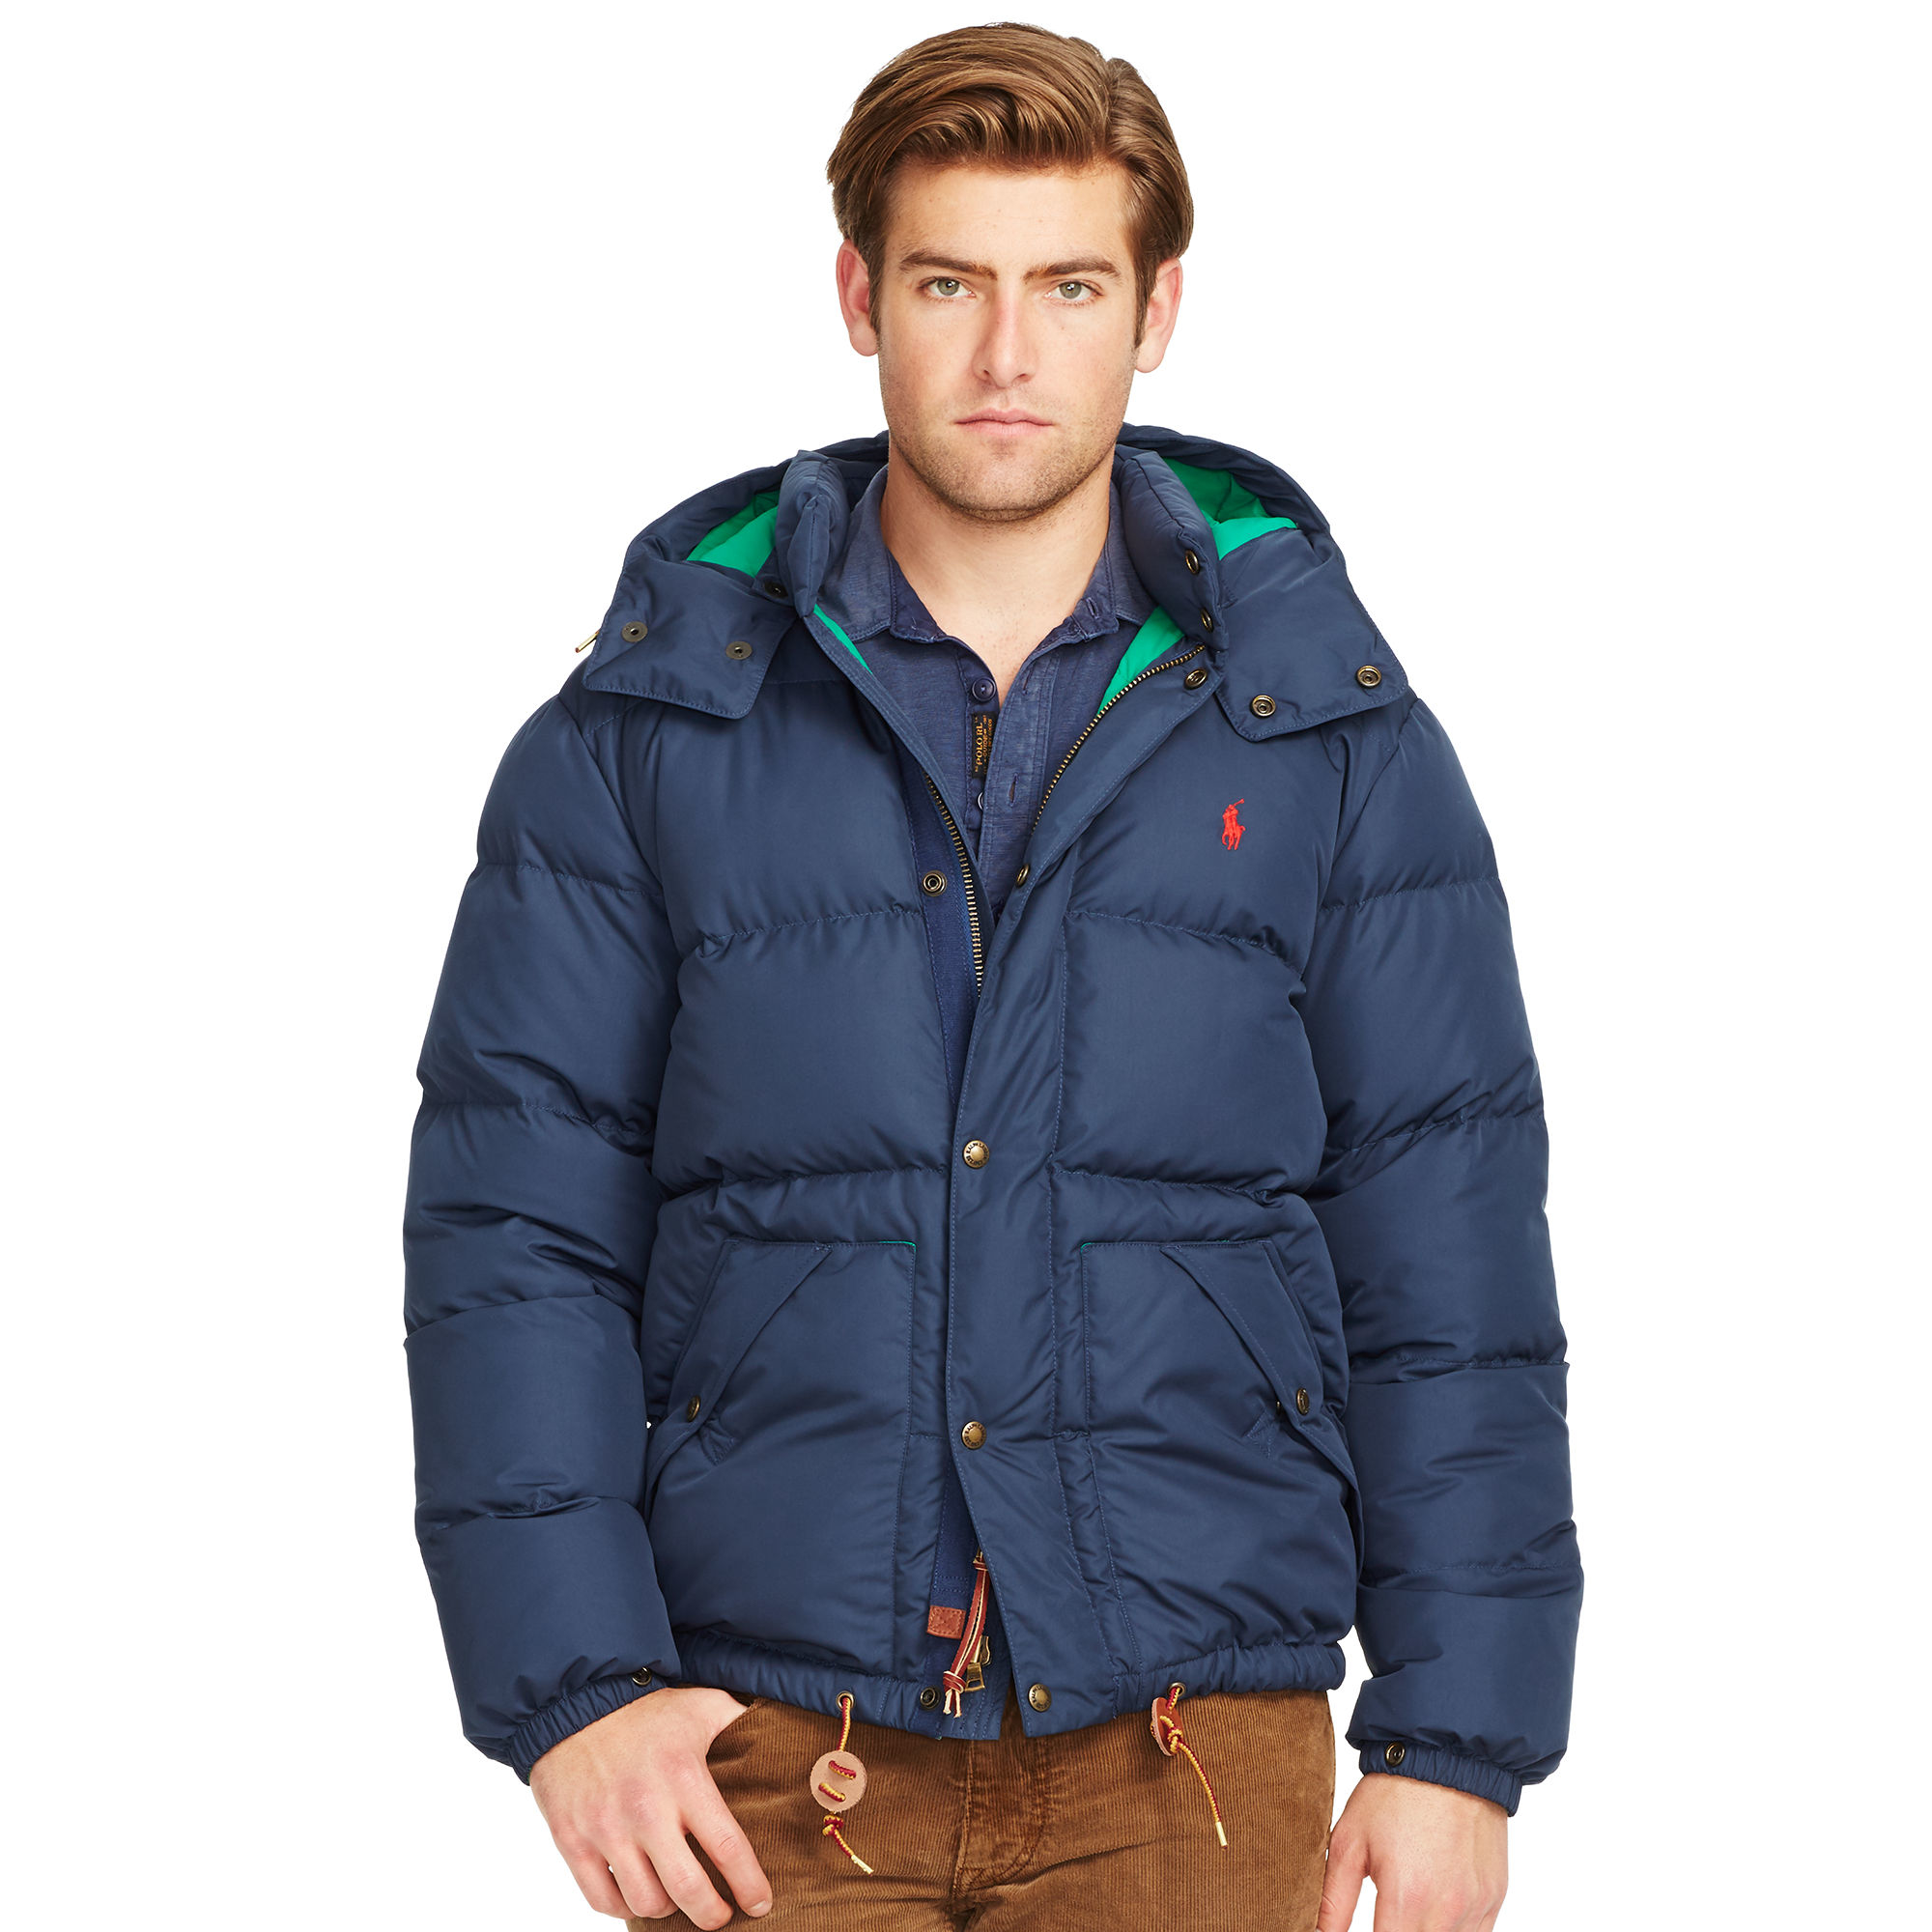 lyst polo ralph lauren quilted down coat in blue for men. Black Bedroom Furniture Sets. Home Design Ideas